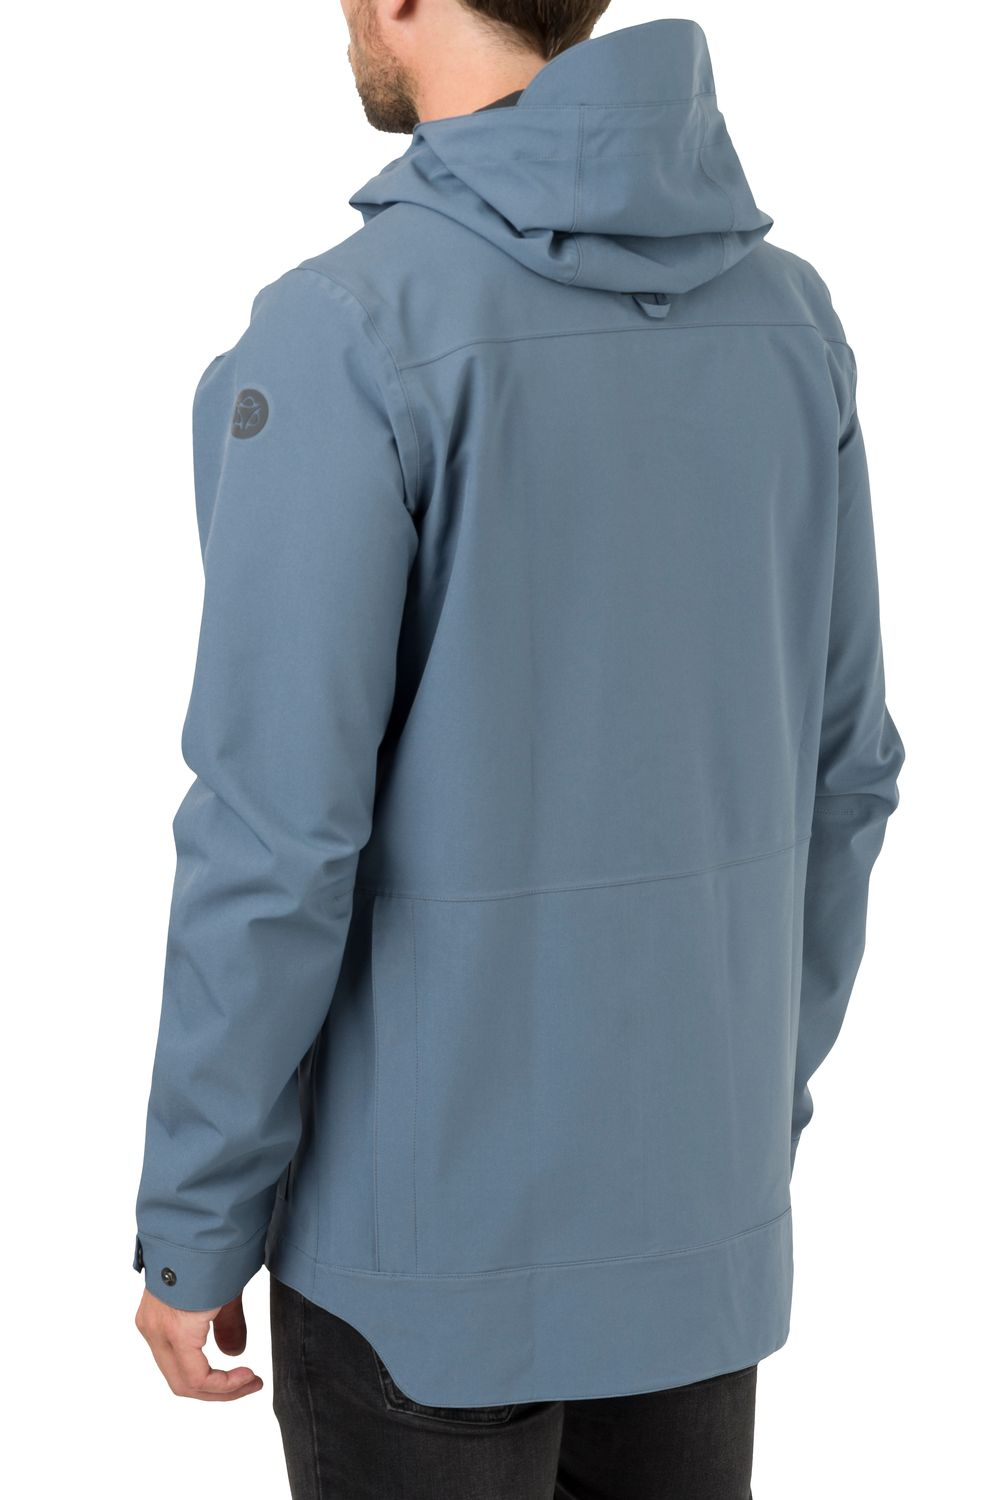 Pocket Regenjas Urban Outdoor Heren fit example